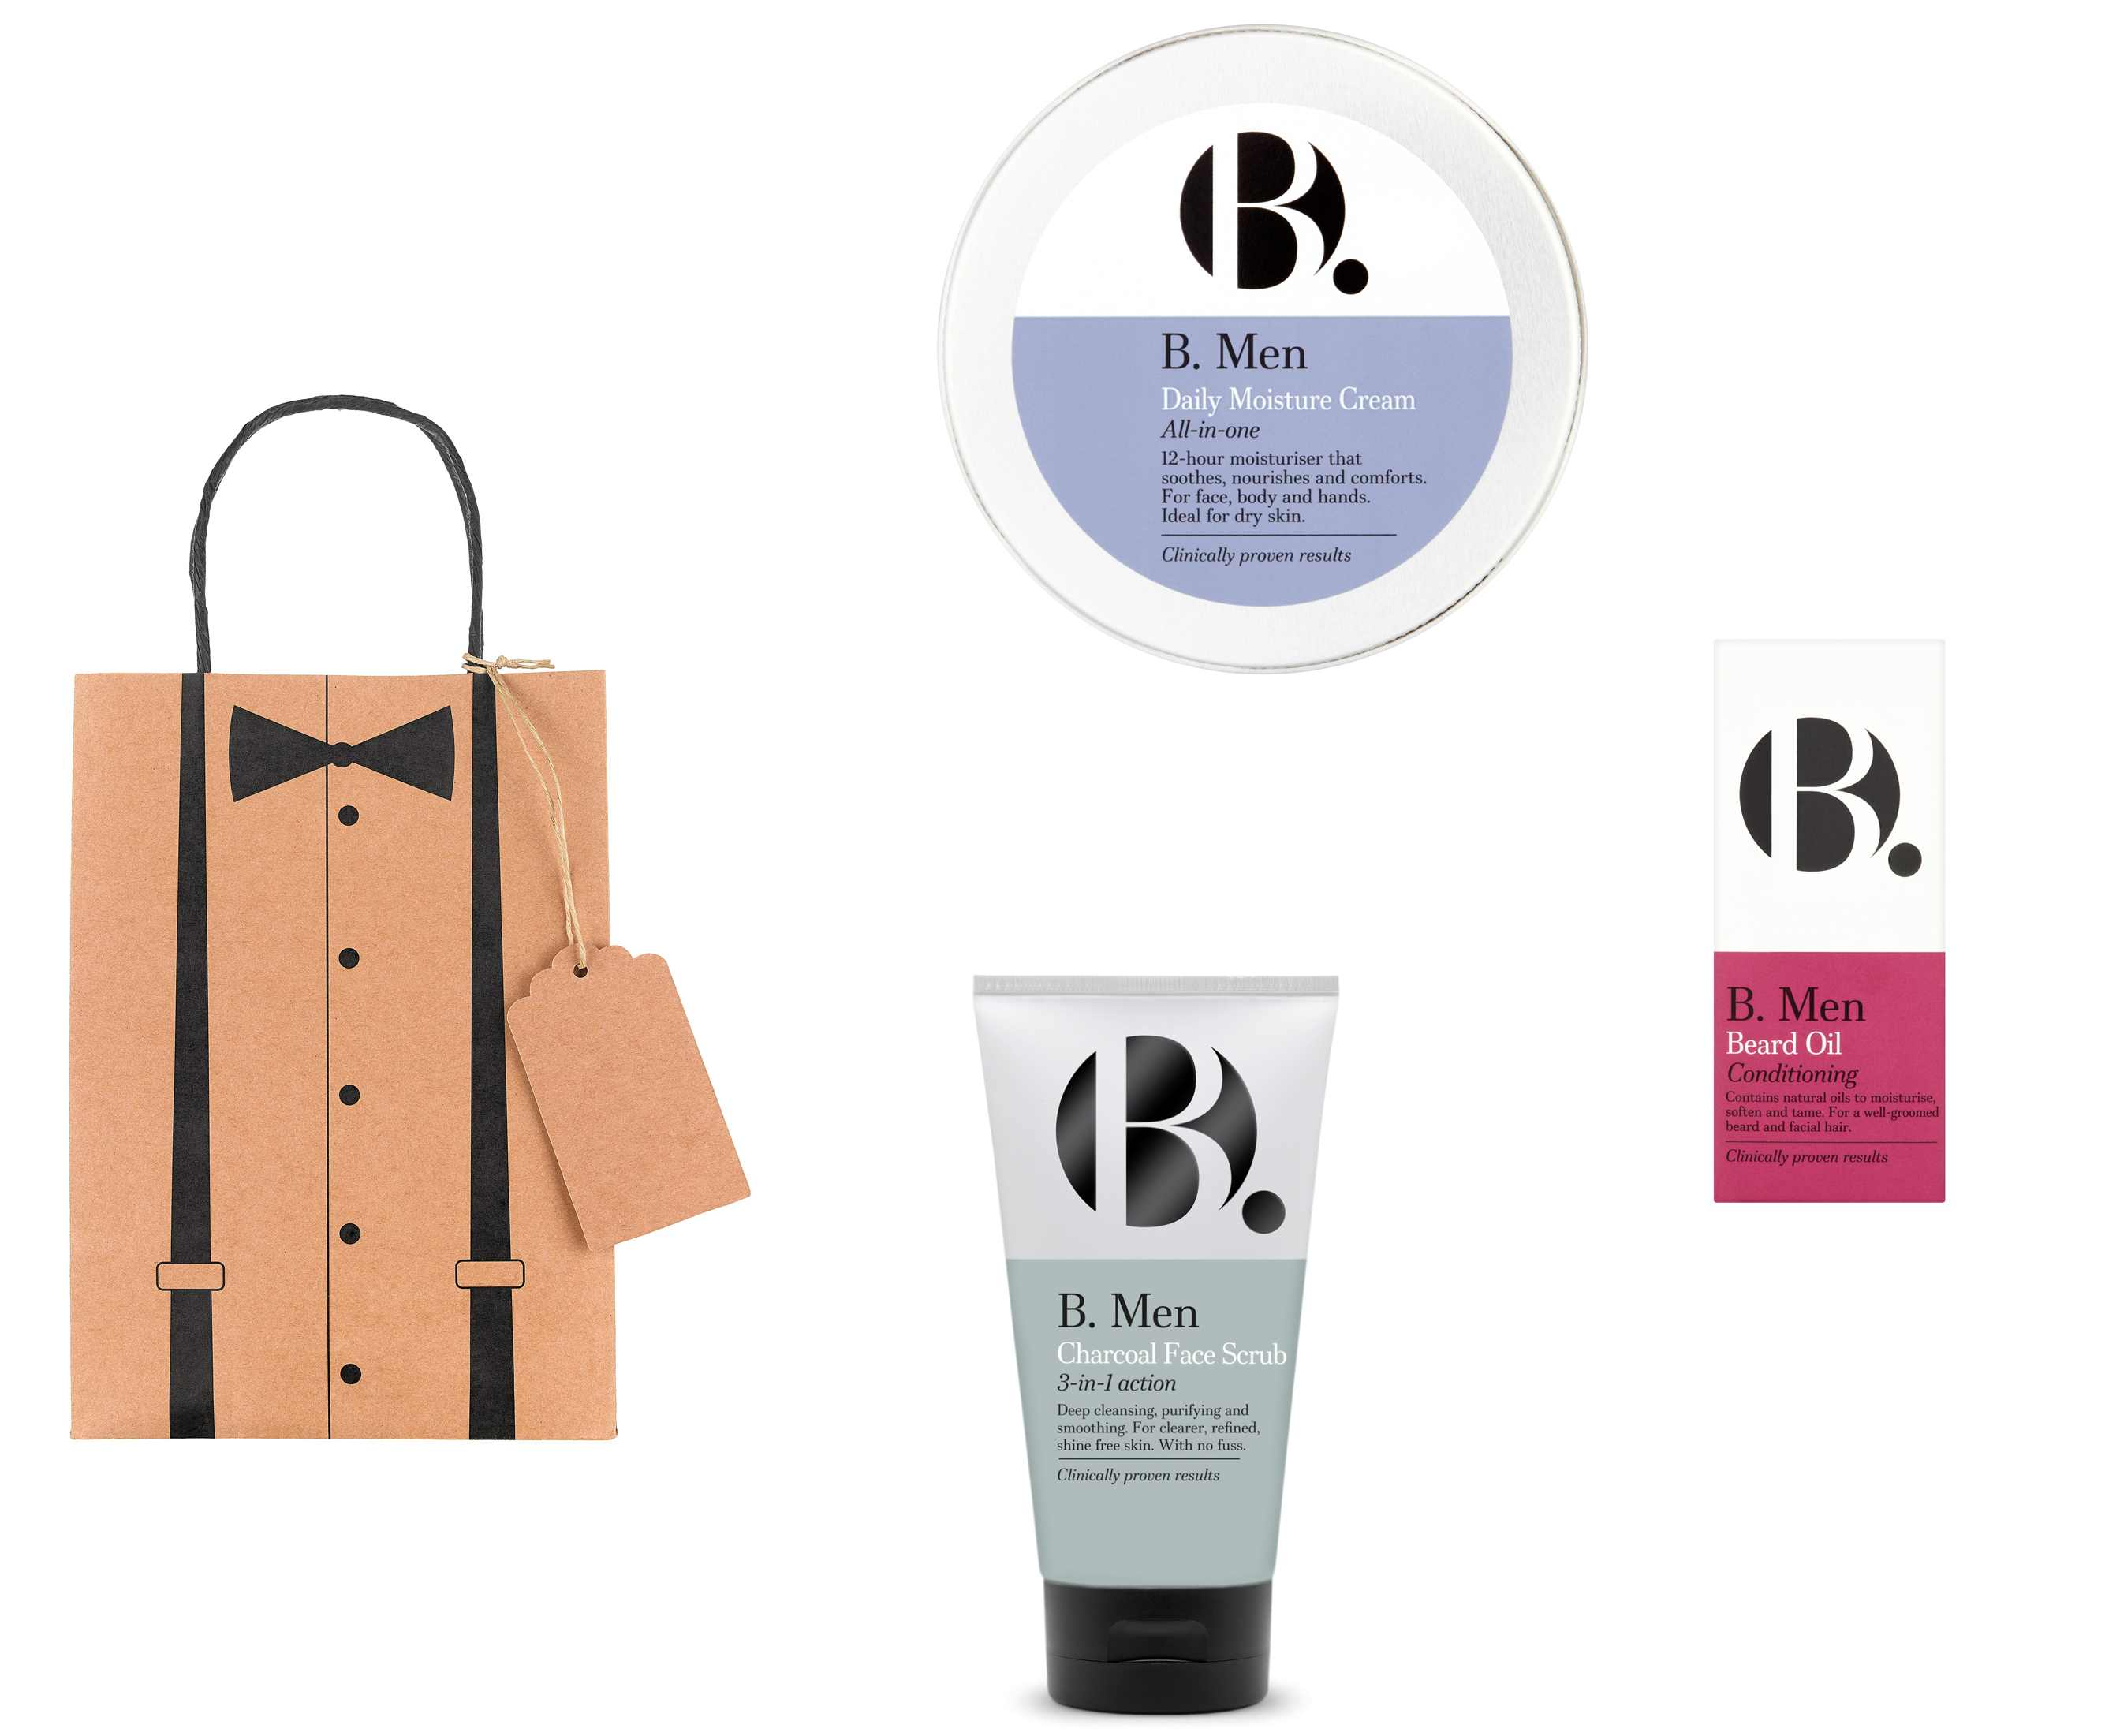 B. Men products and father's day gift bag